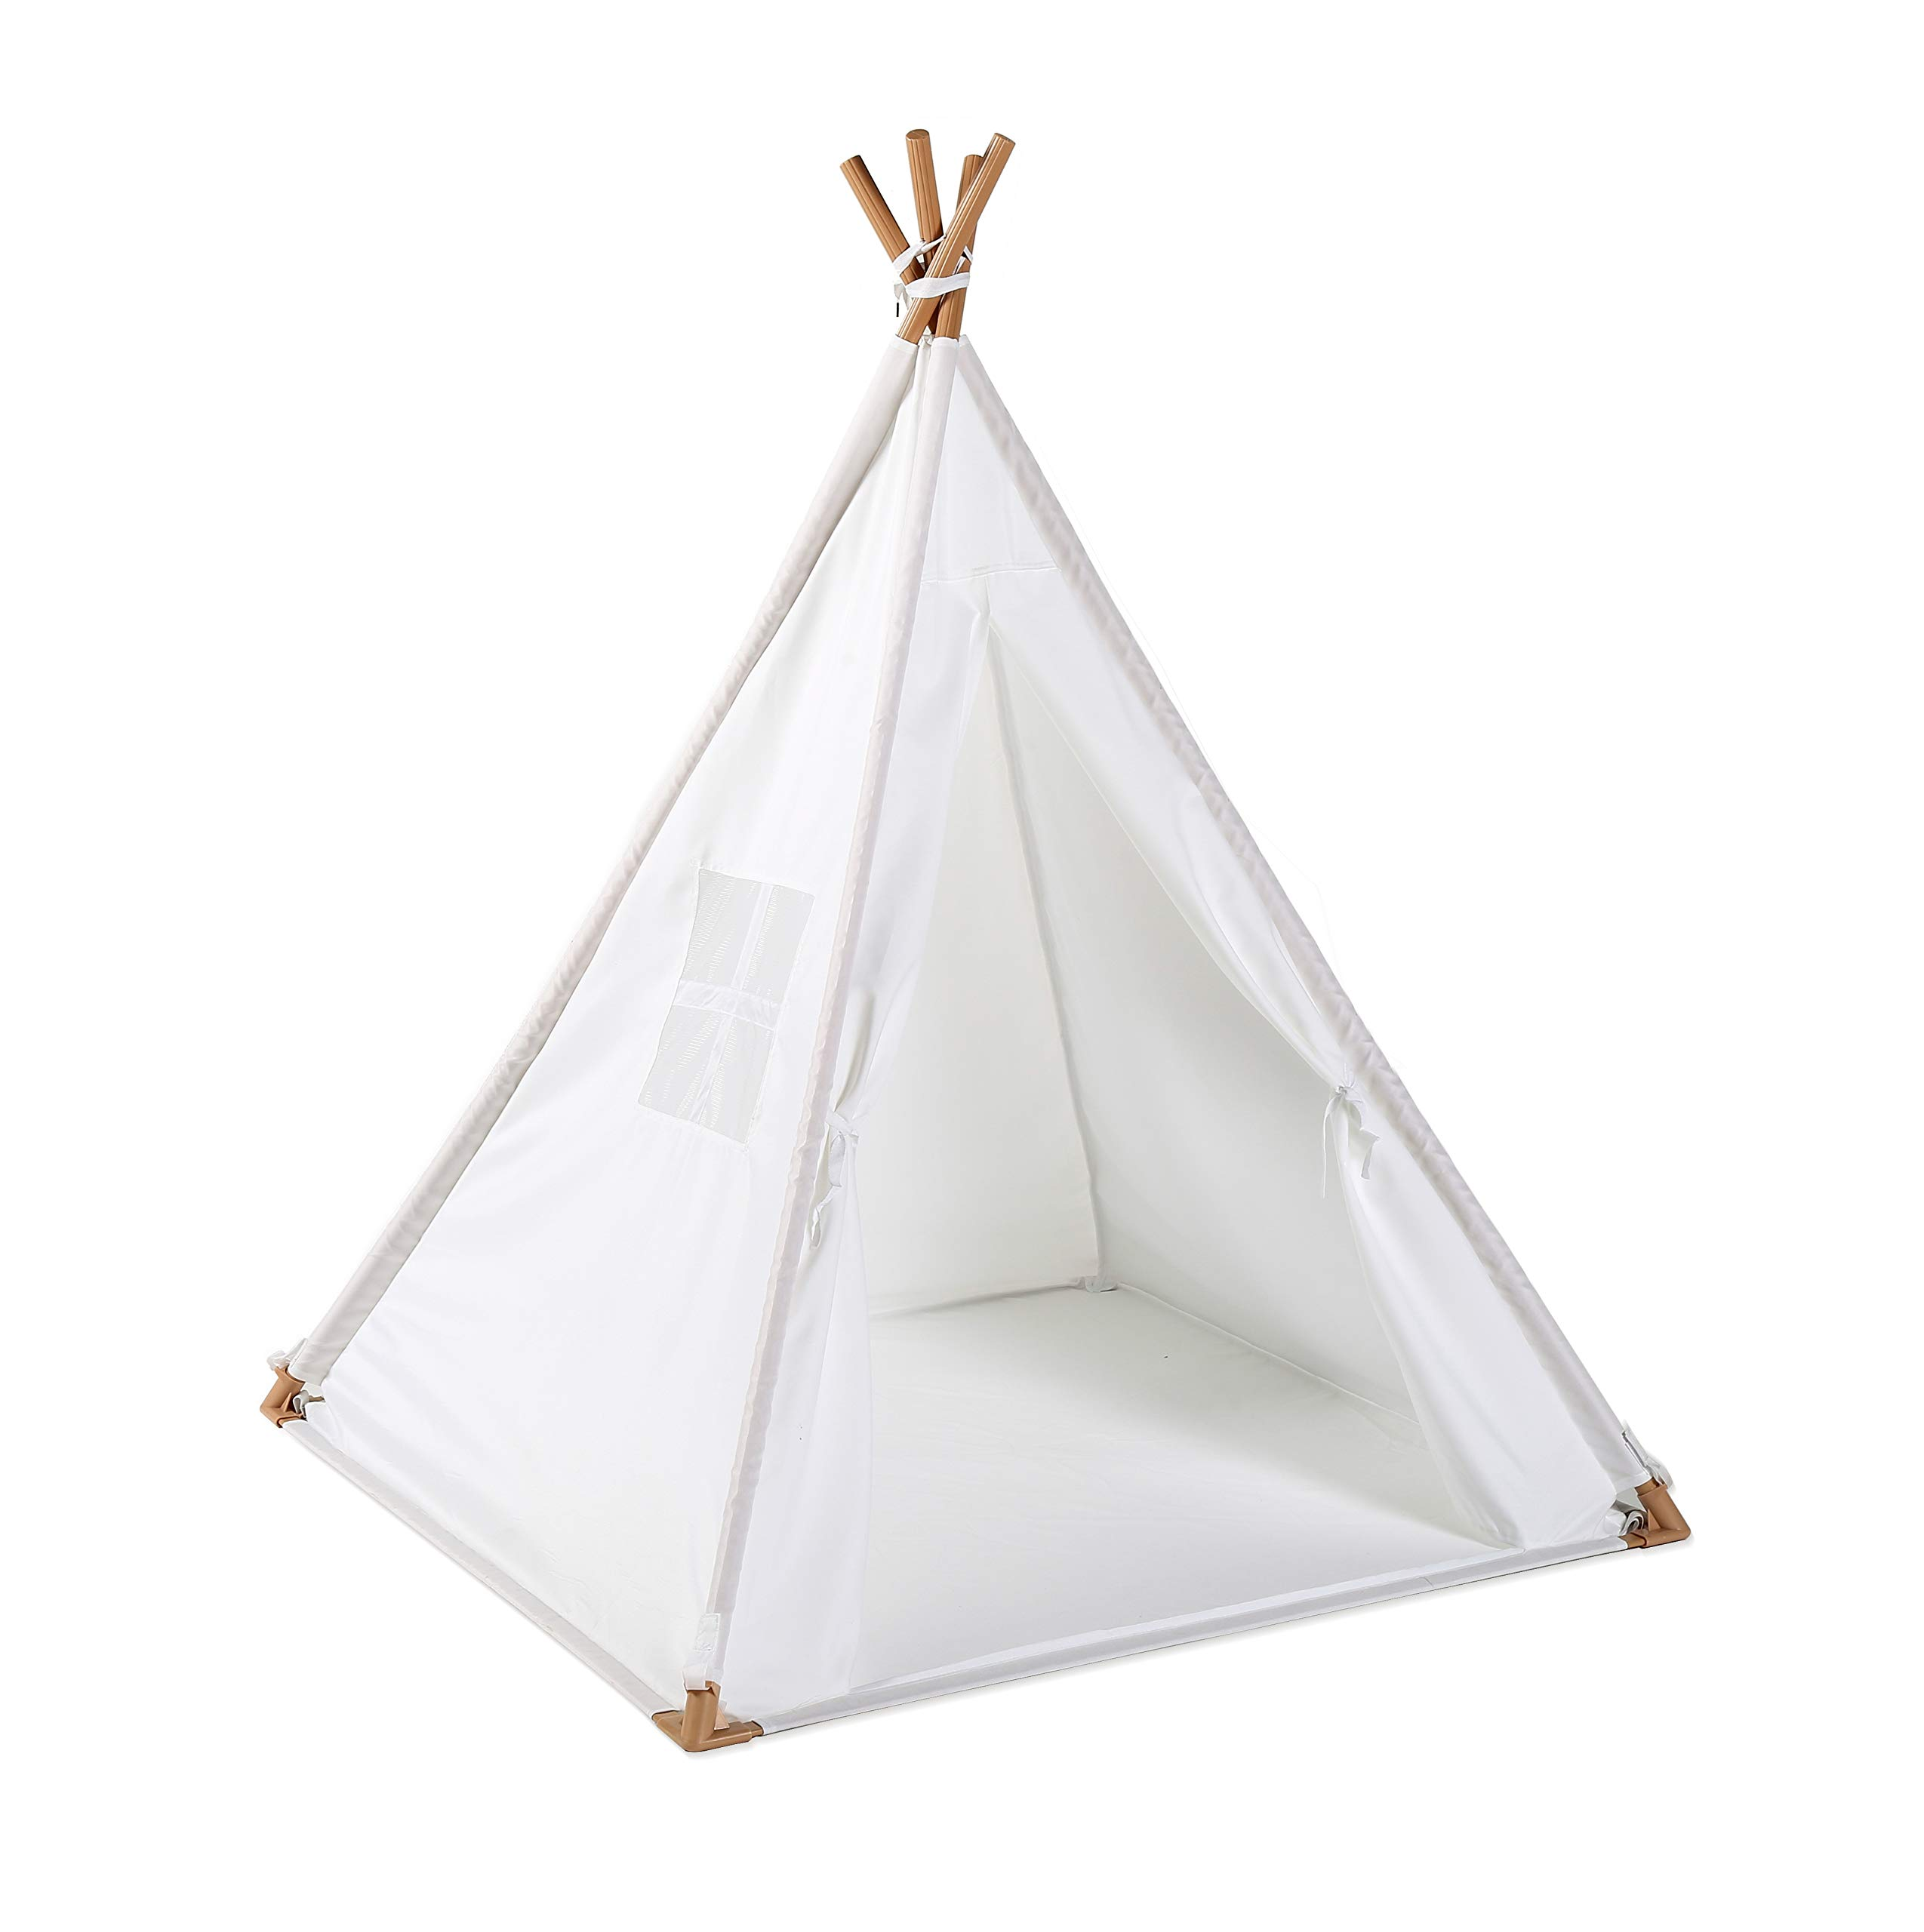 Utex Kid'S Teepee Tent, Indoor Outdoor Play House ,Floor Mate, Indian Teepee Playhouse Sleeping Dome Play Tent W/Zipper Carry Bag for Boys ,Girls